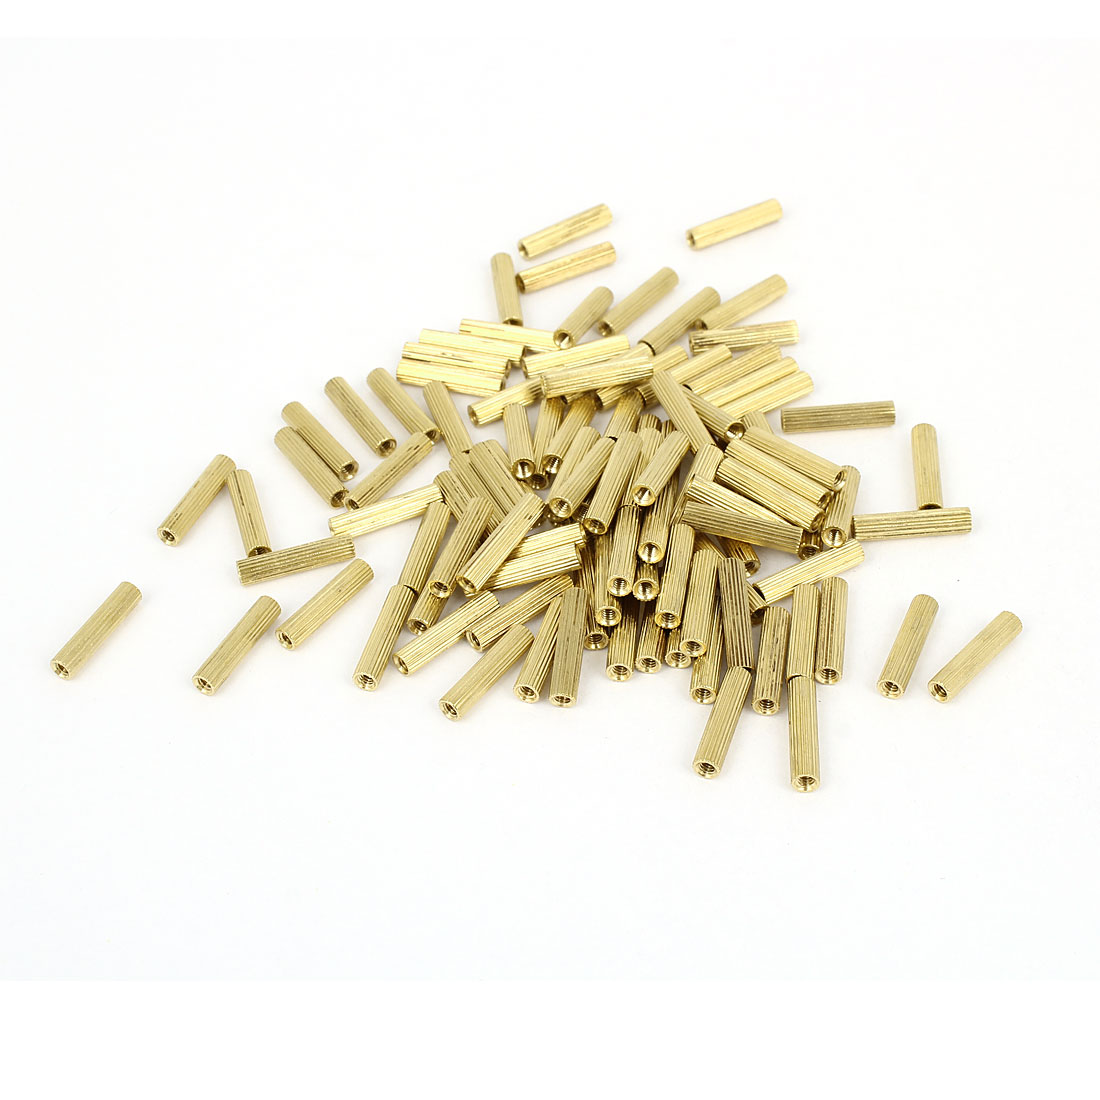 M2x14mm Cylinder Female Threaded Brass Standoff Spacer Pillars 100 Pcs